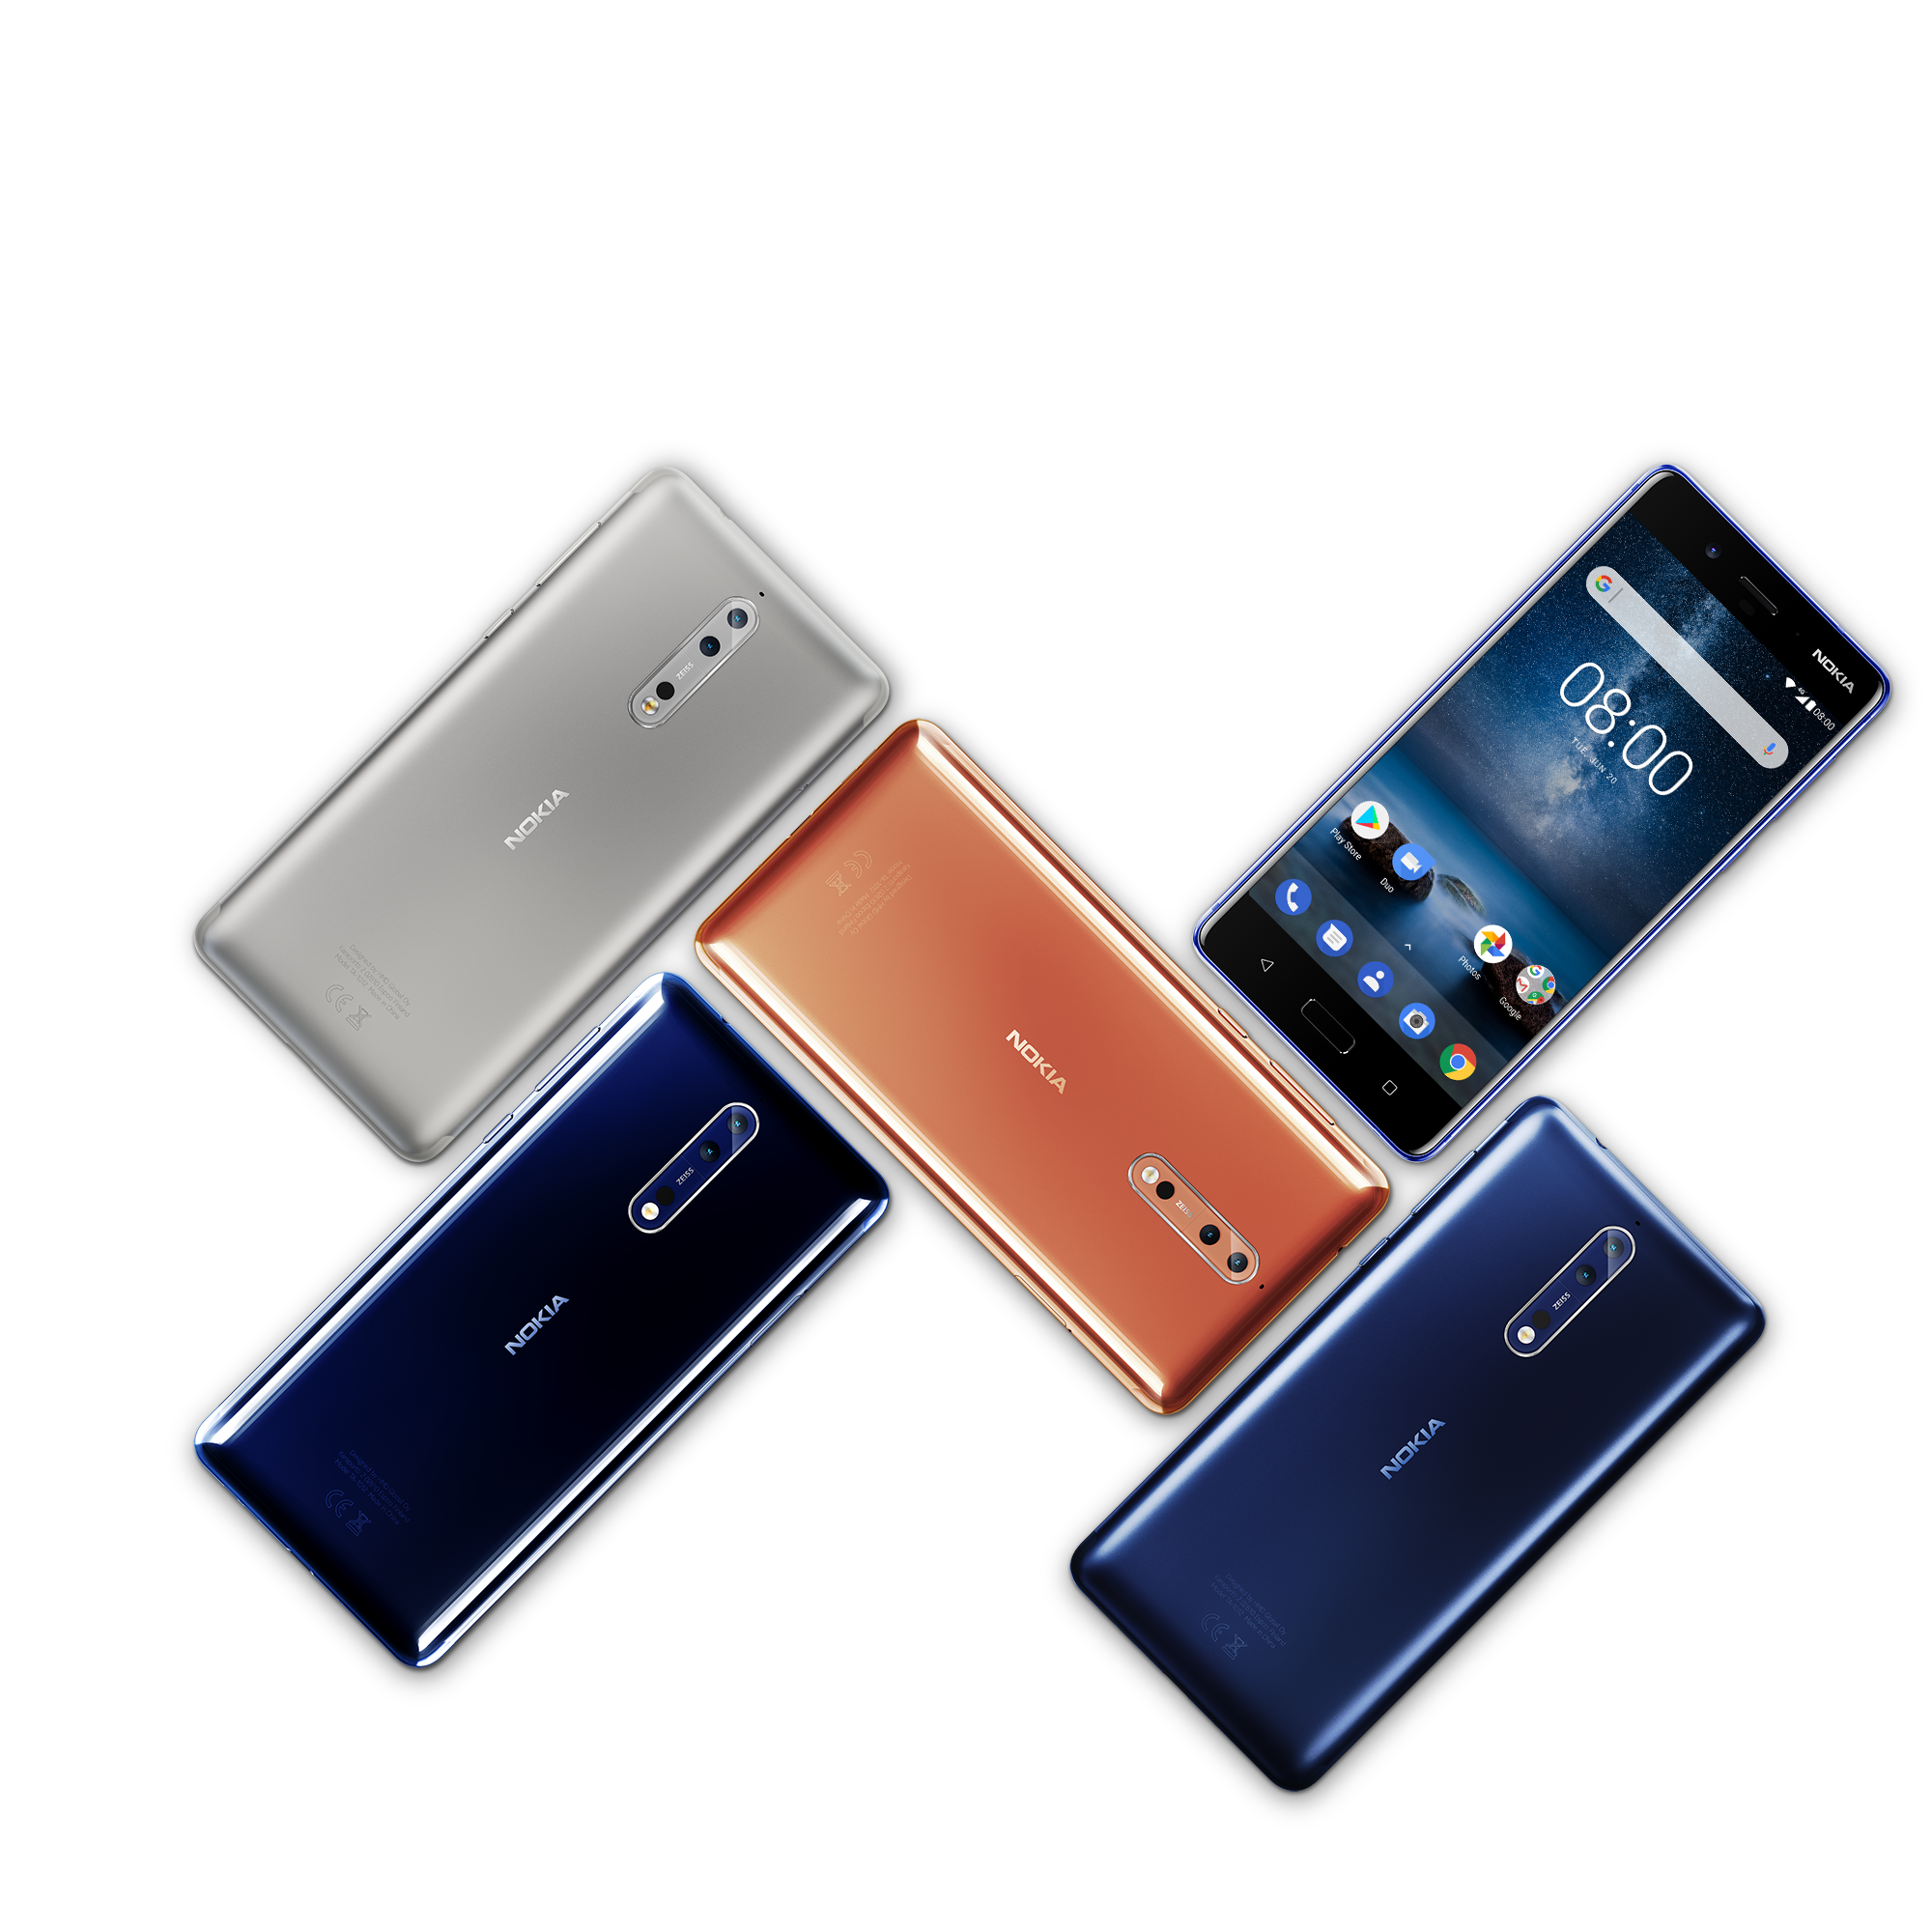 Un anno di Nokia e HMD Global